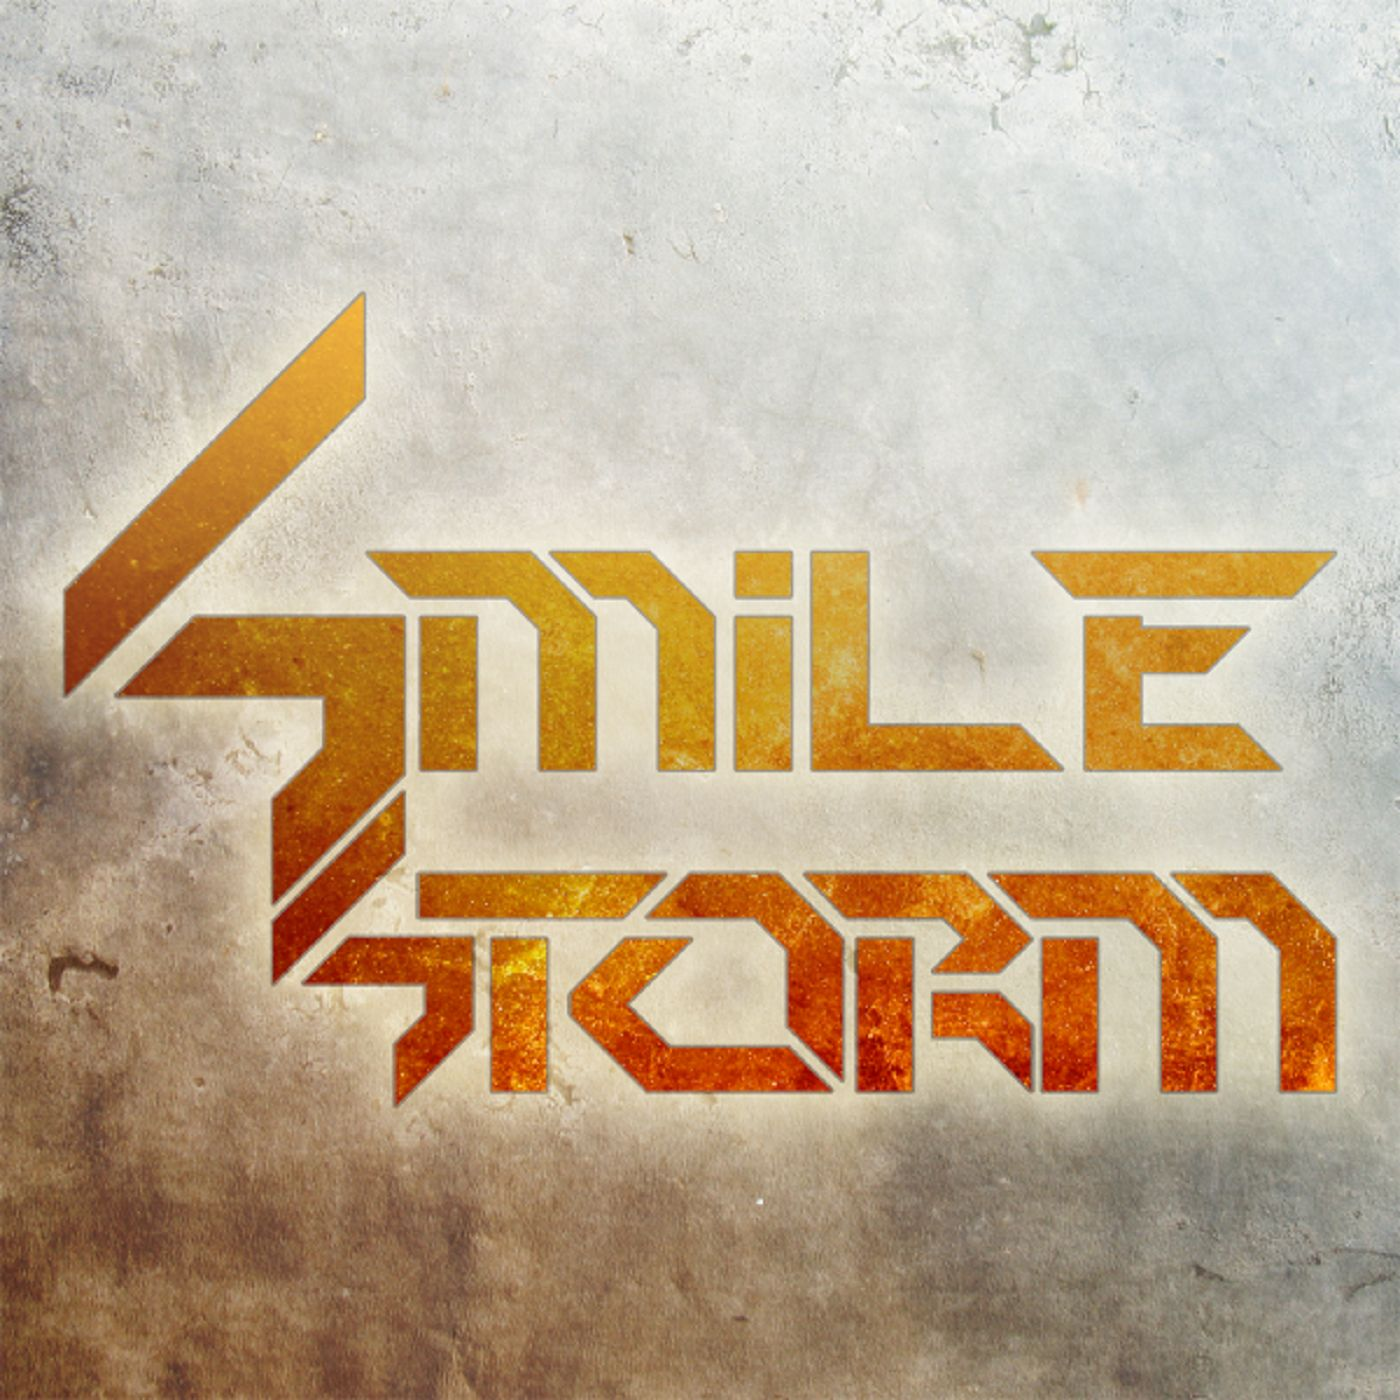 Smile storm's SoundCloud